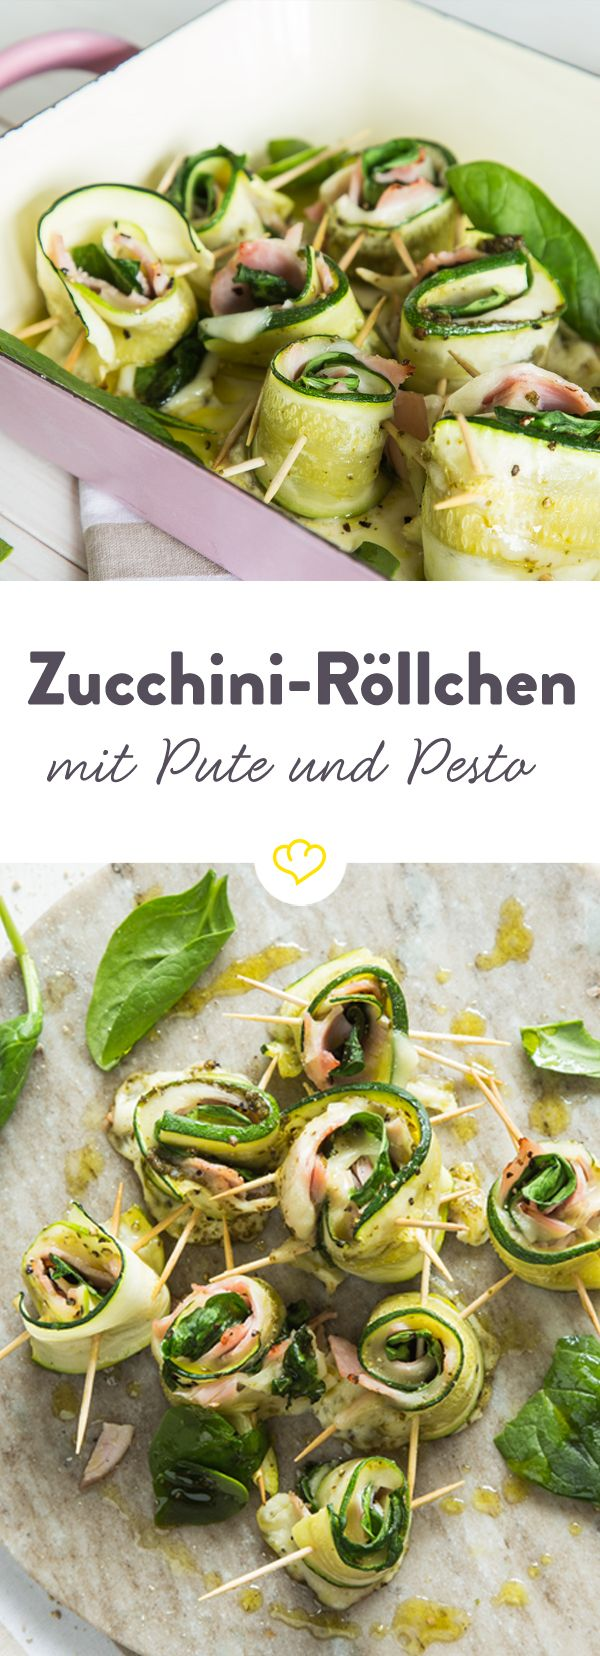 mahlzeit 30 leckere lunch rezepte f r jeden tag rezepte pinterest low carb zucchini. Black Bedroom Furniture Sets. Home Design Ideas